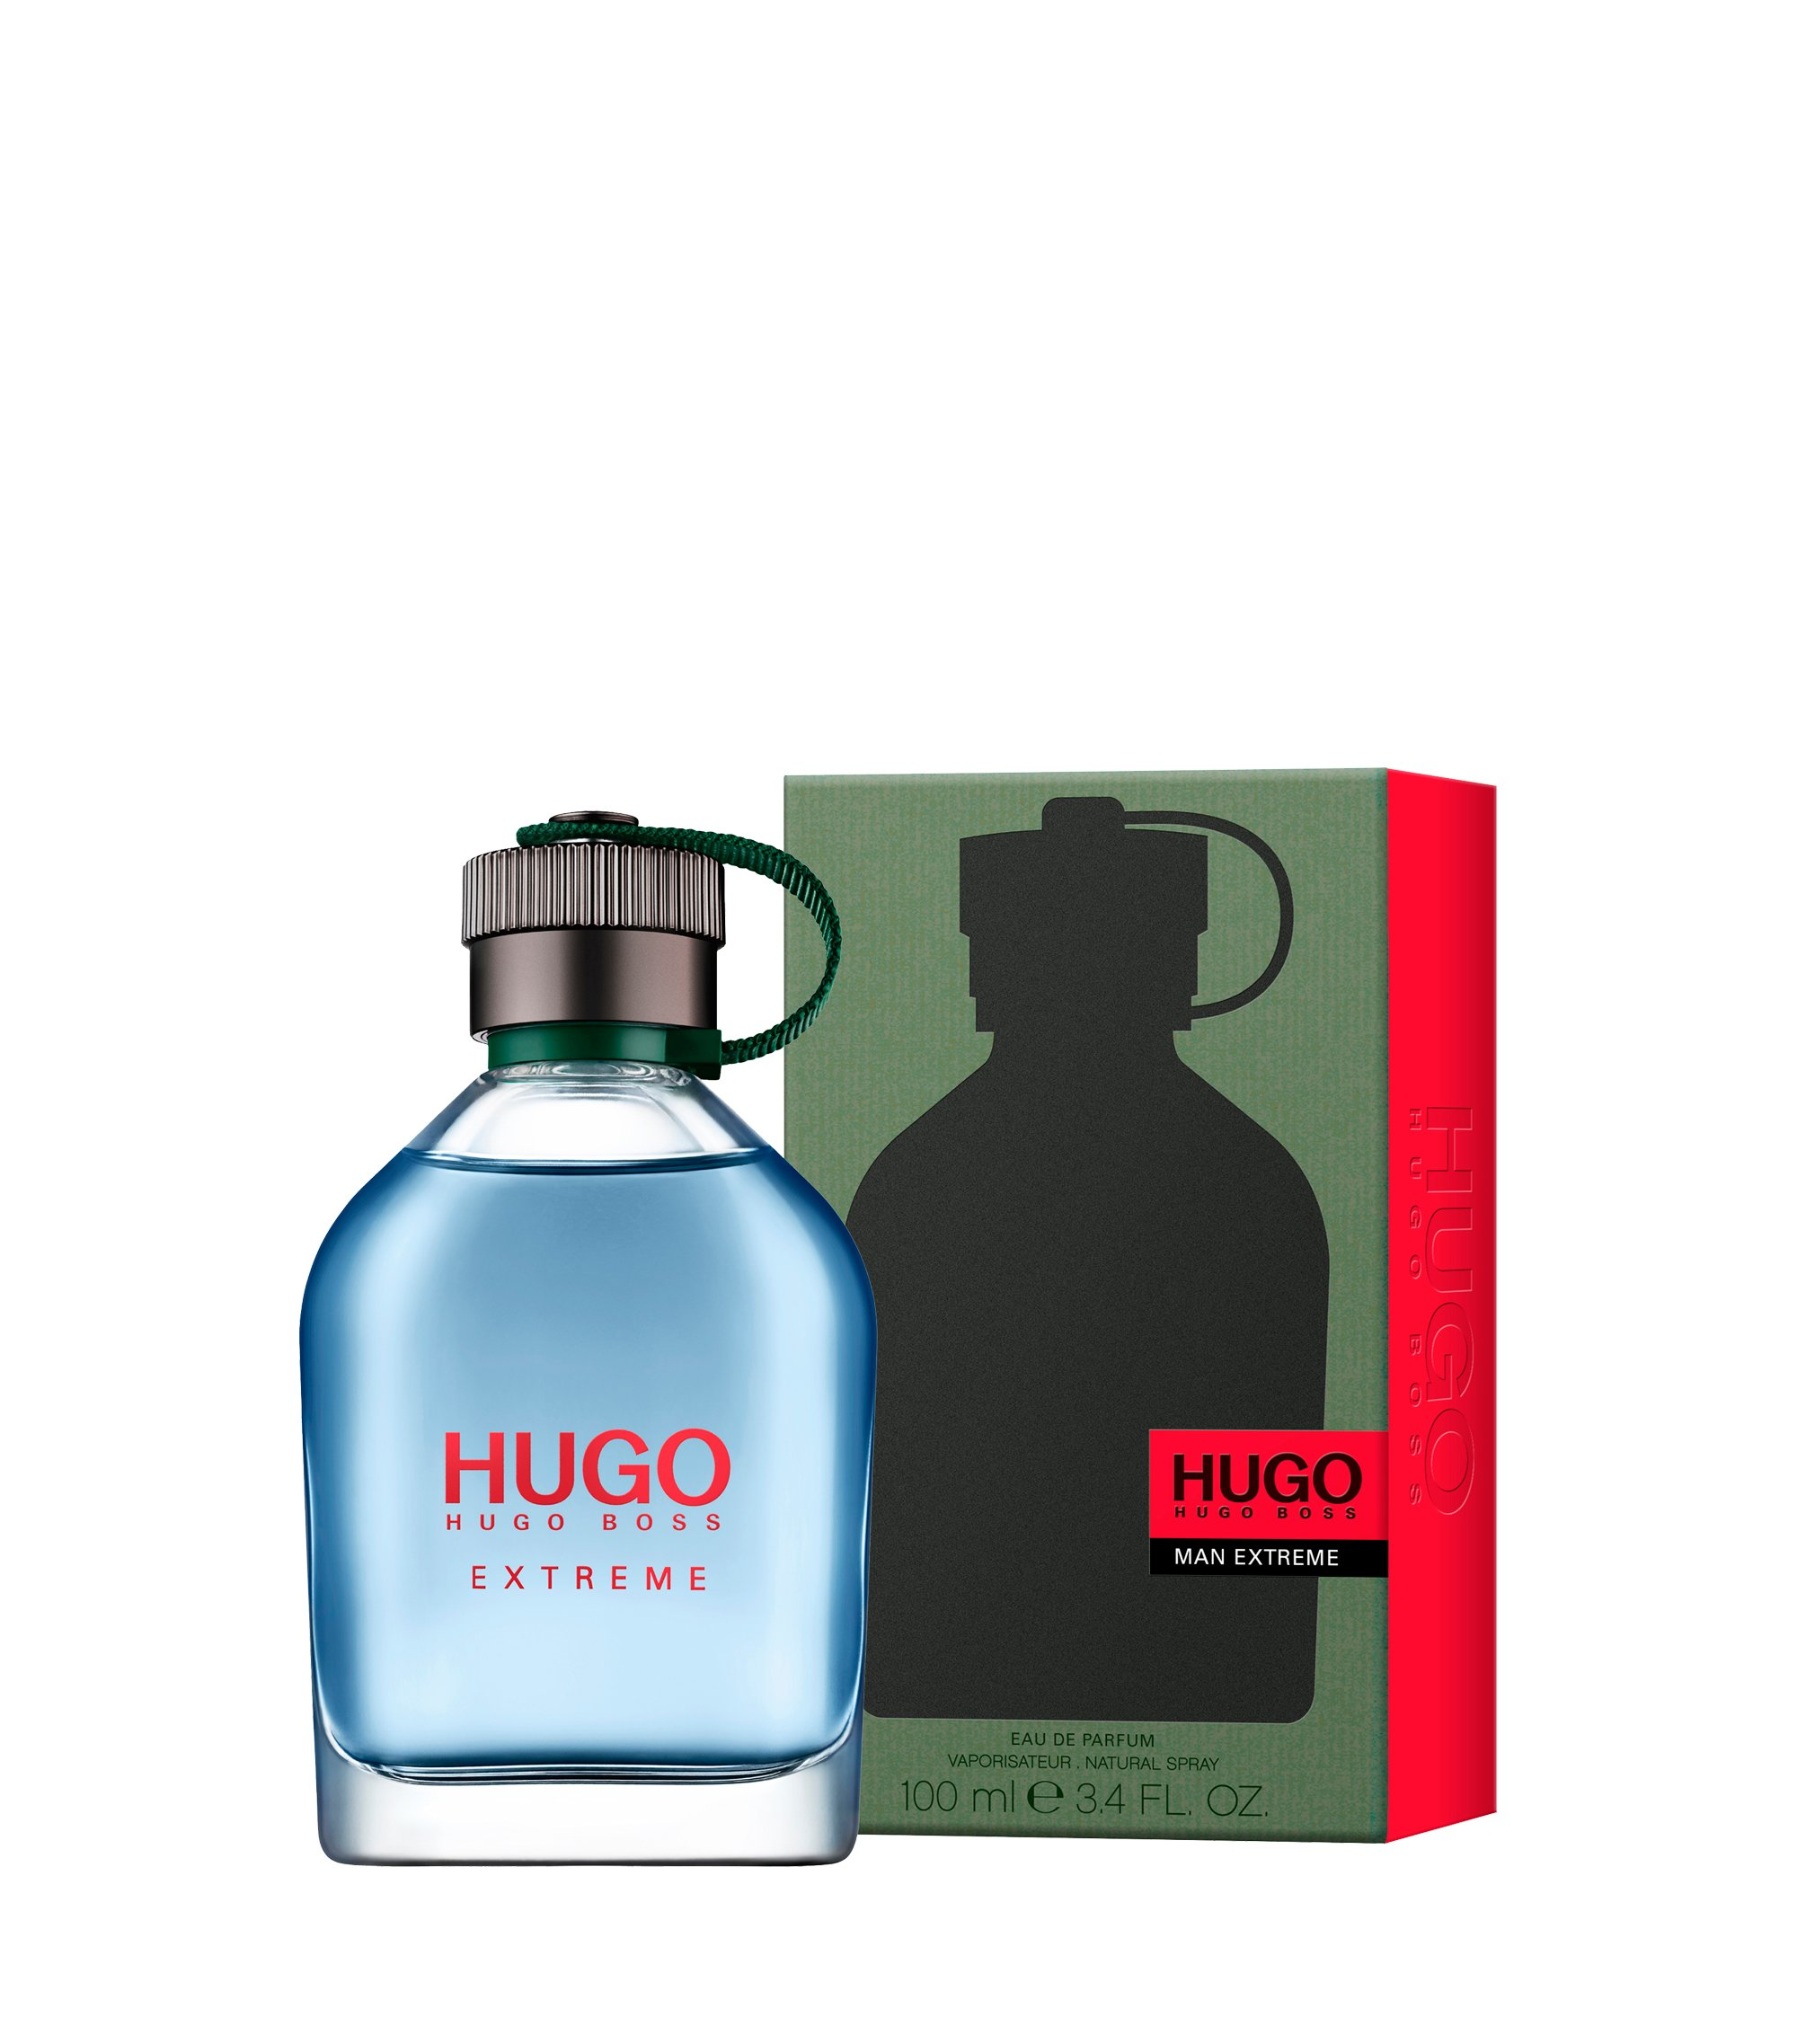 HUGO Man Extreme Eau de Parfum 100 ml, Assorted-Pre-Pack